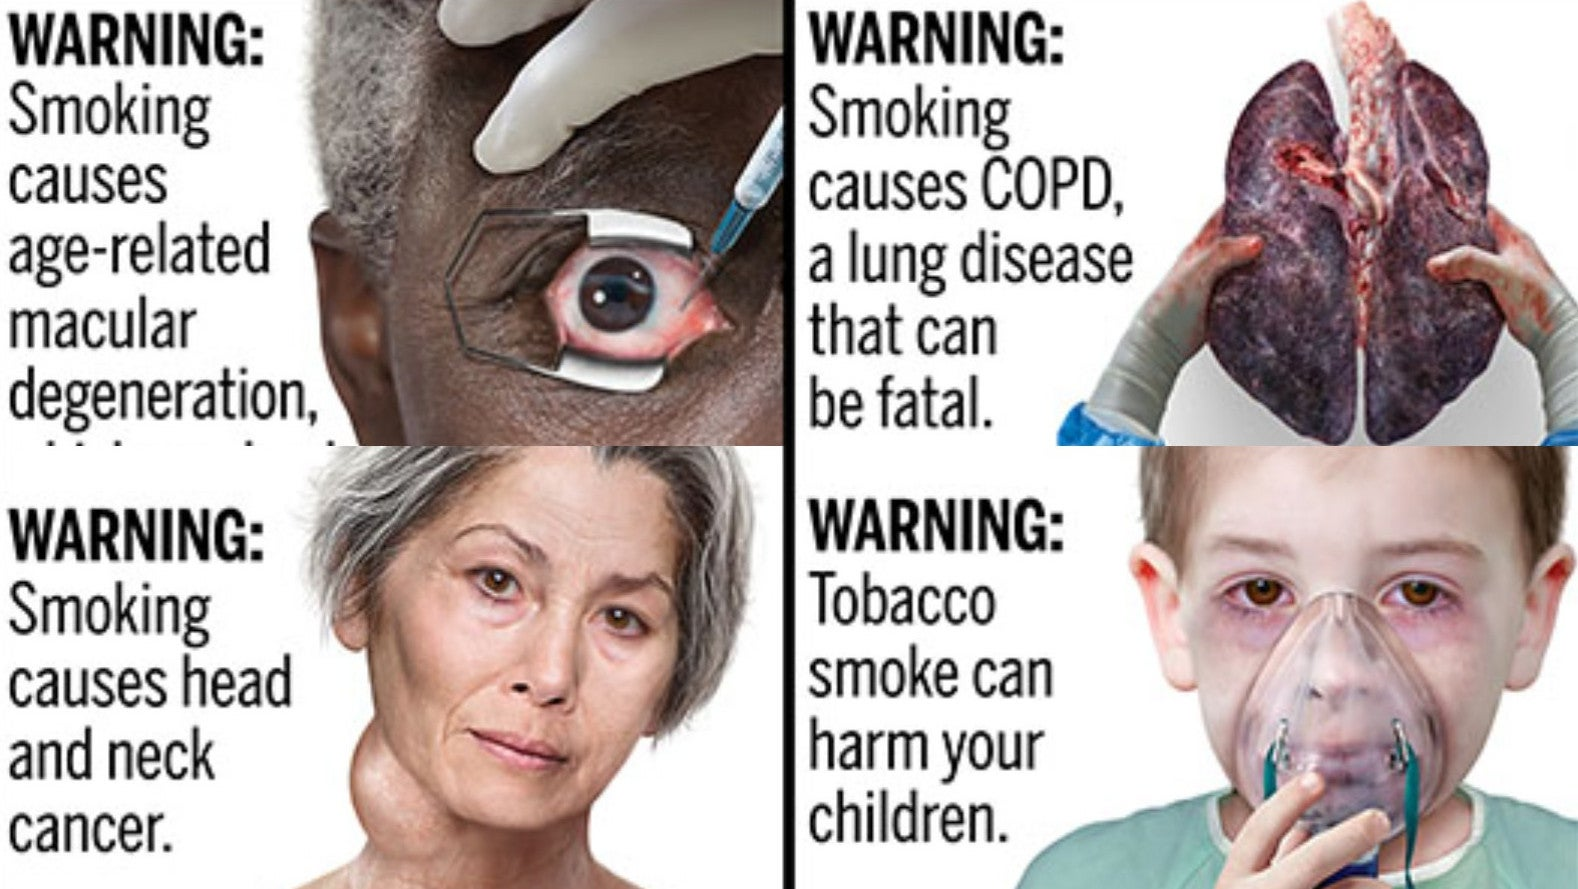 America Set To Catch Up To The Rest Of The World With Graphic New Cigarette Warnings